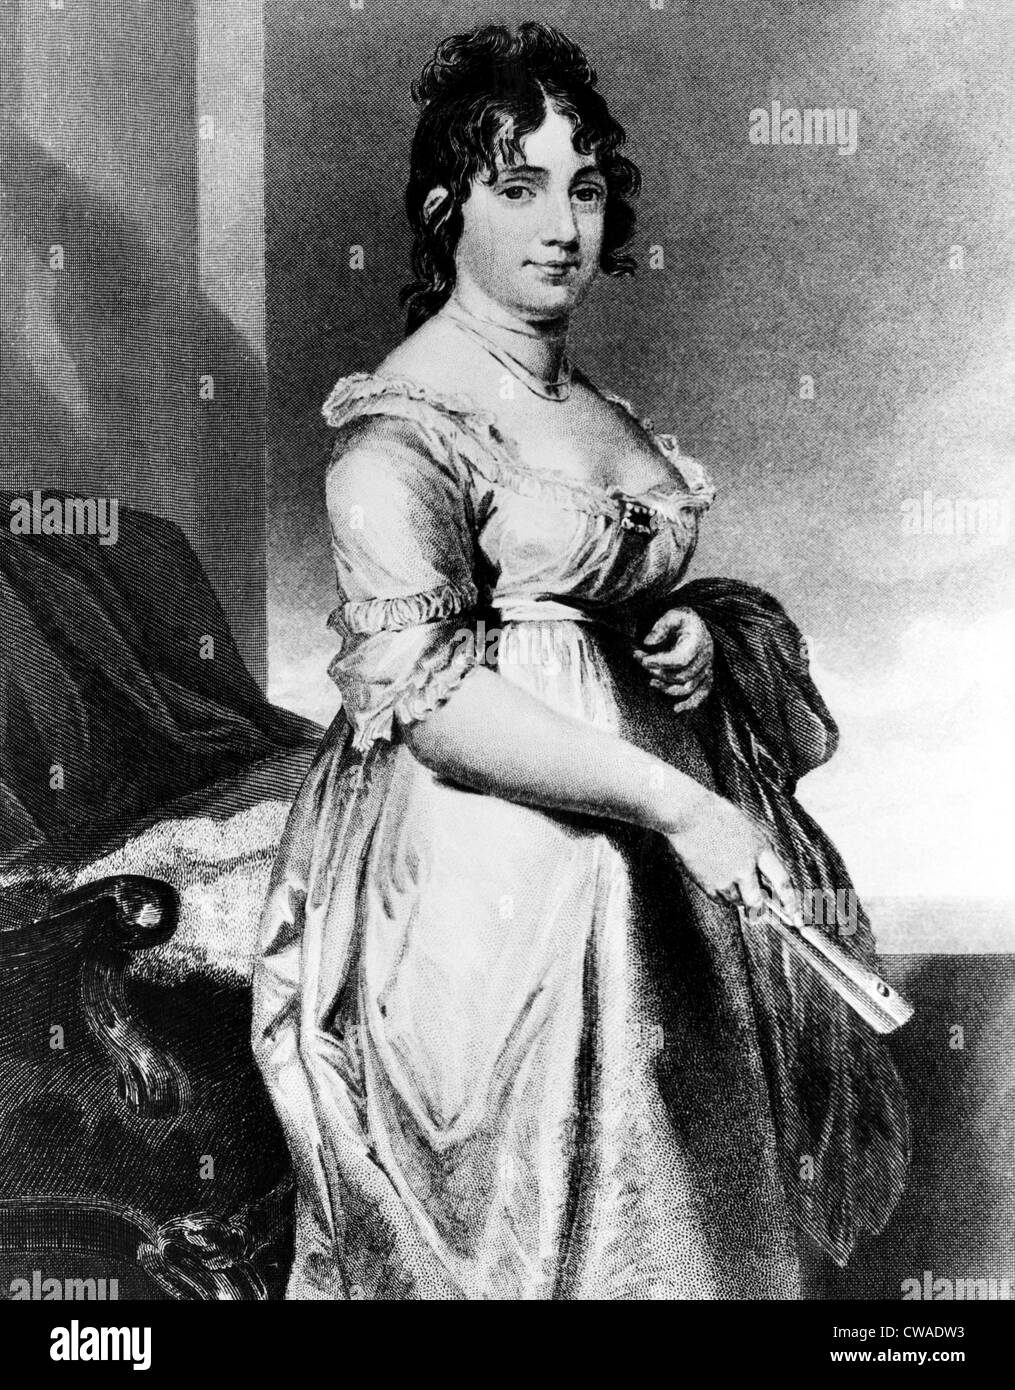 Dolley Madison (1768-1849), First Lady 1809-1817, c. 1818.. Courtesy: CSU Archives / Everett Collection - Stock Image